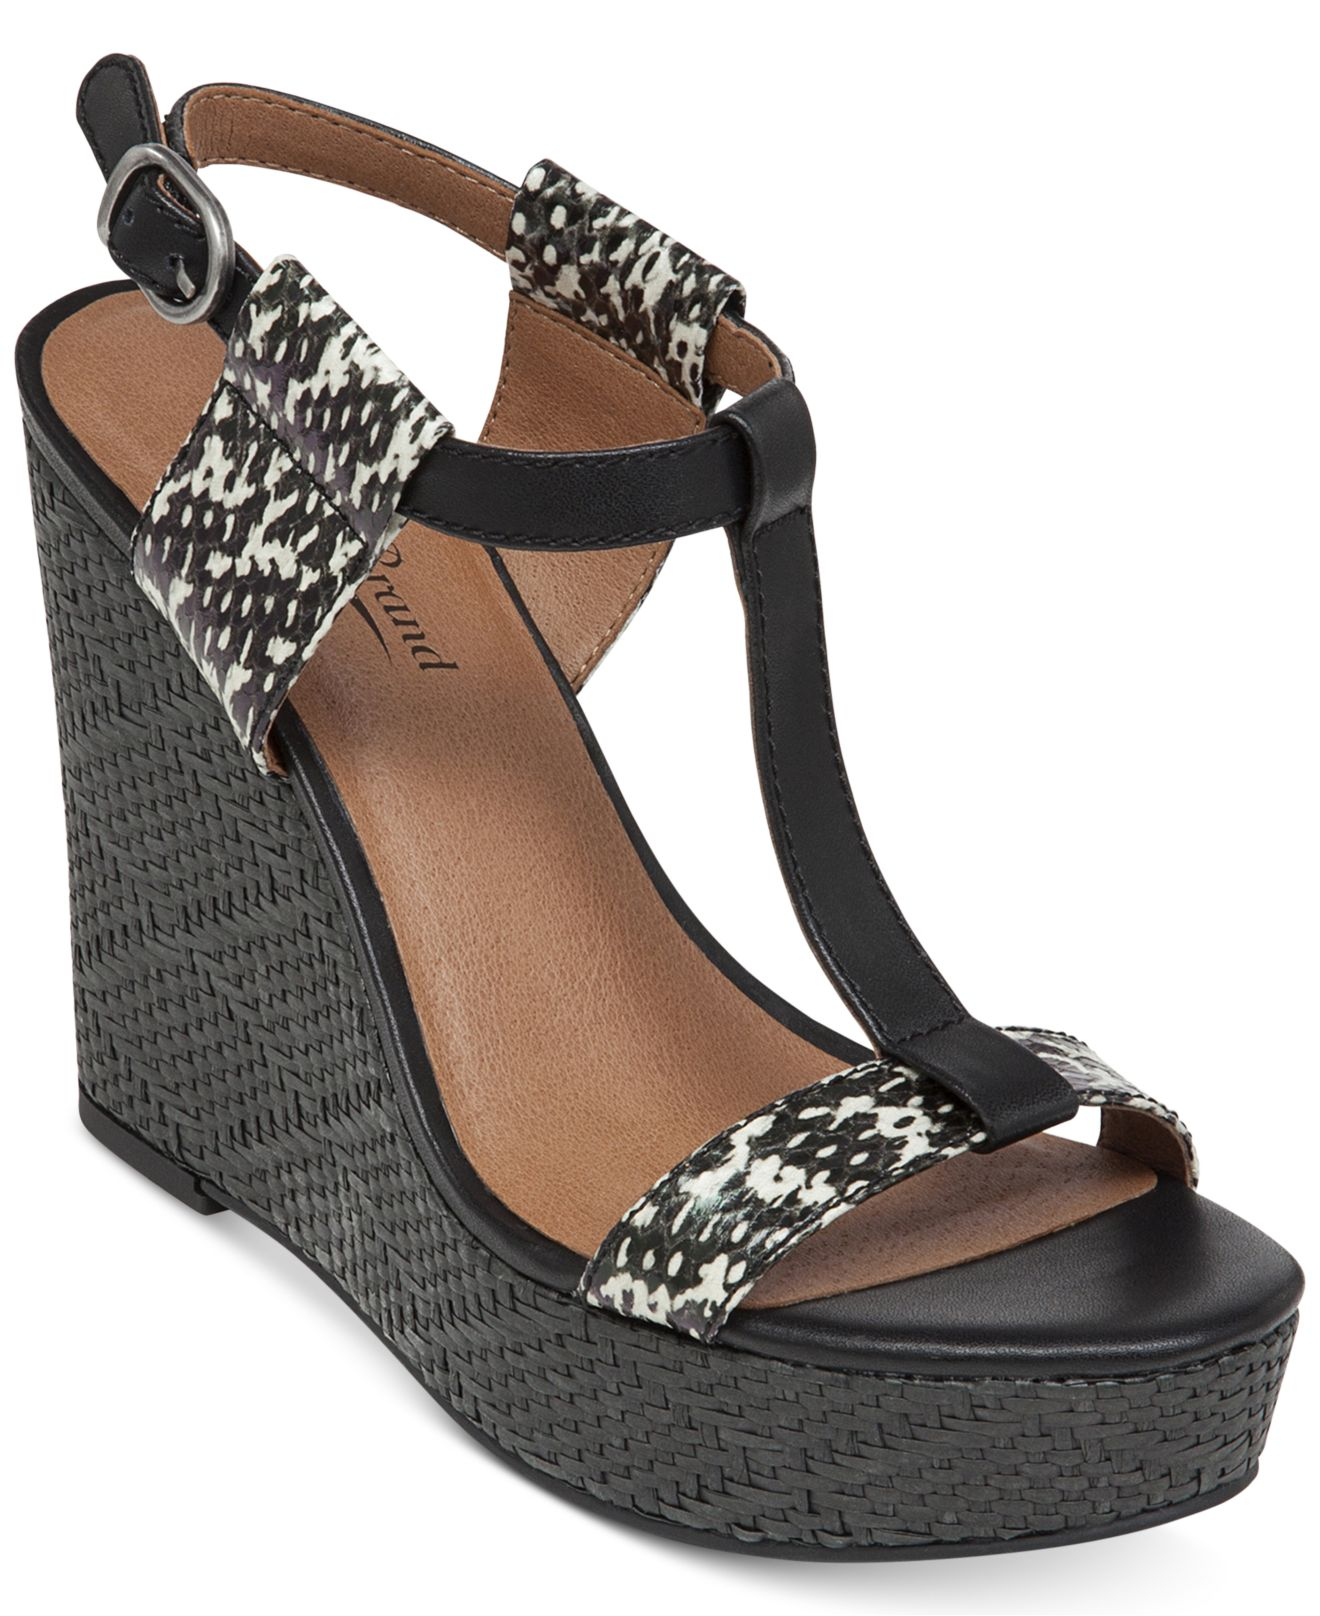 Lyst - Lucky Brand Women's Lovell Platform Wedge Sandals